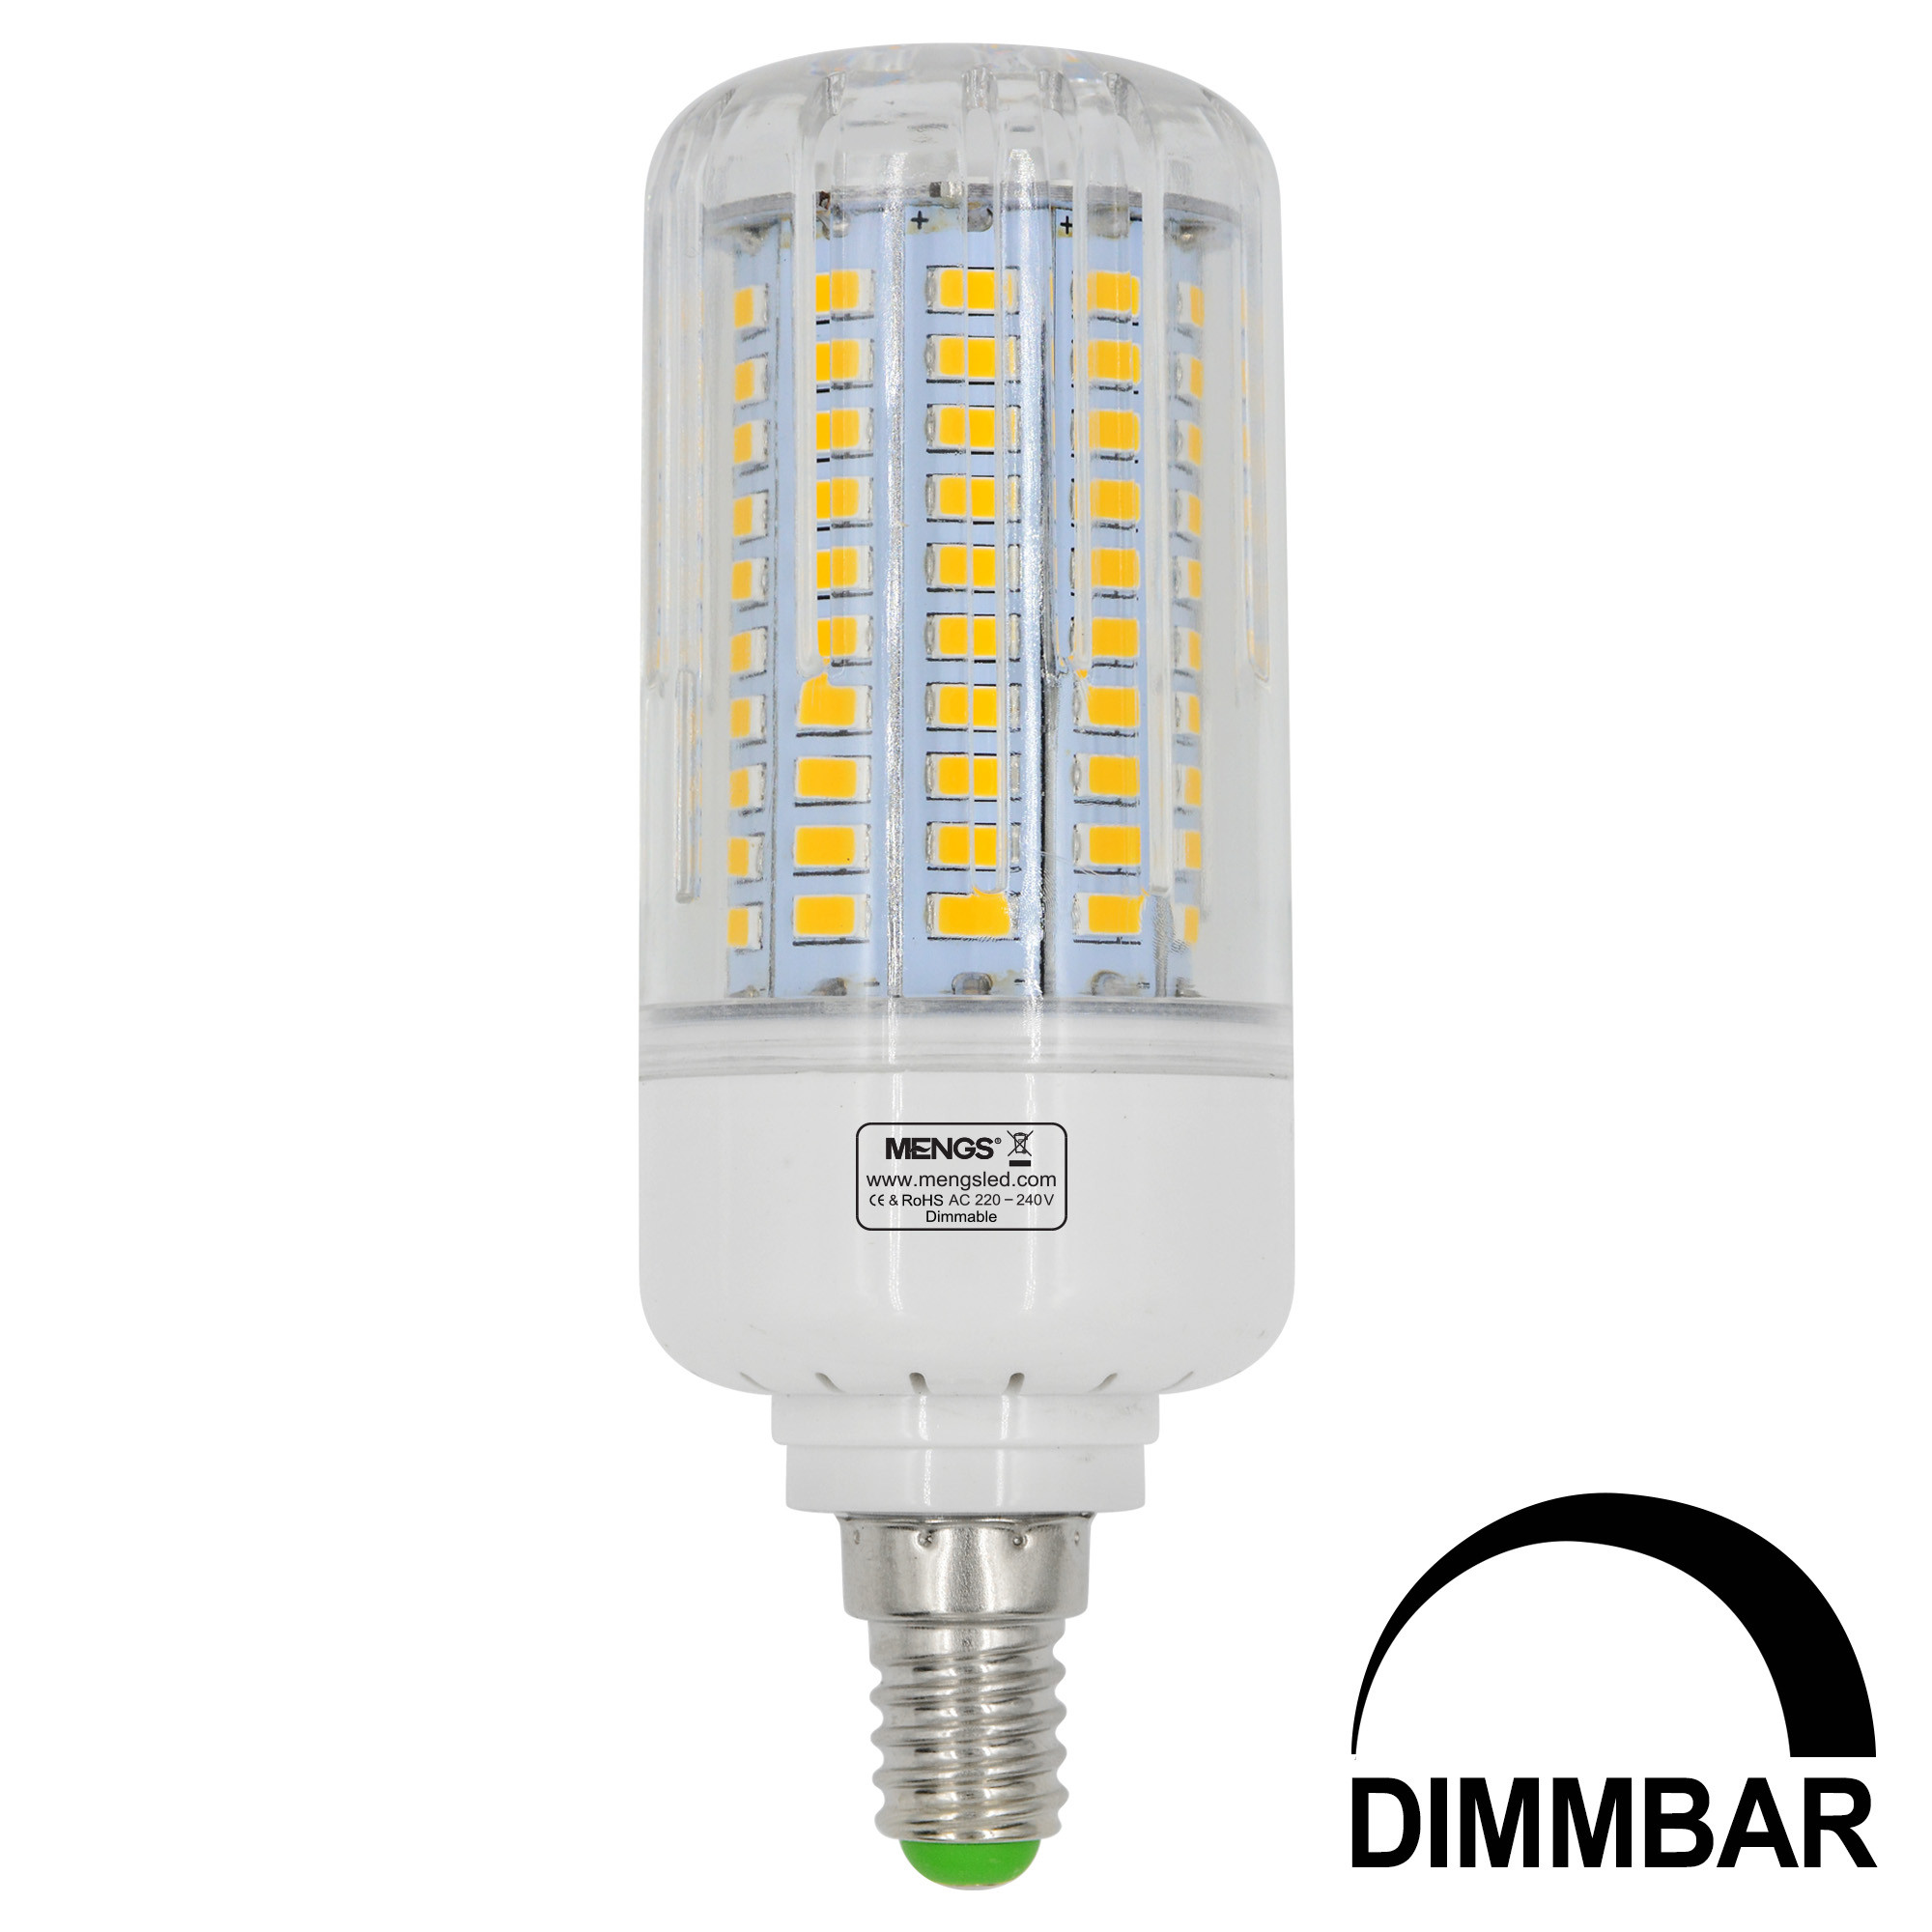 MENGS® E14 15W LED Dimmable Corn Light 120x 5736 SMD LED Bulb Lamp AC 220-240V In Warm White Energy-Saving Light